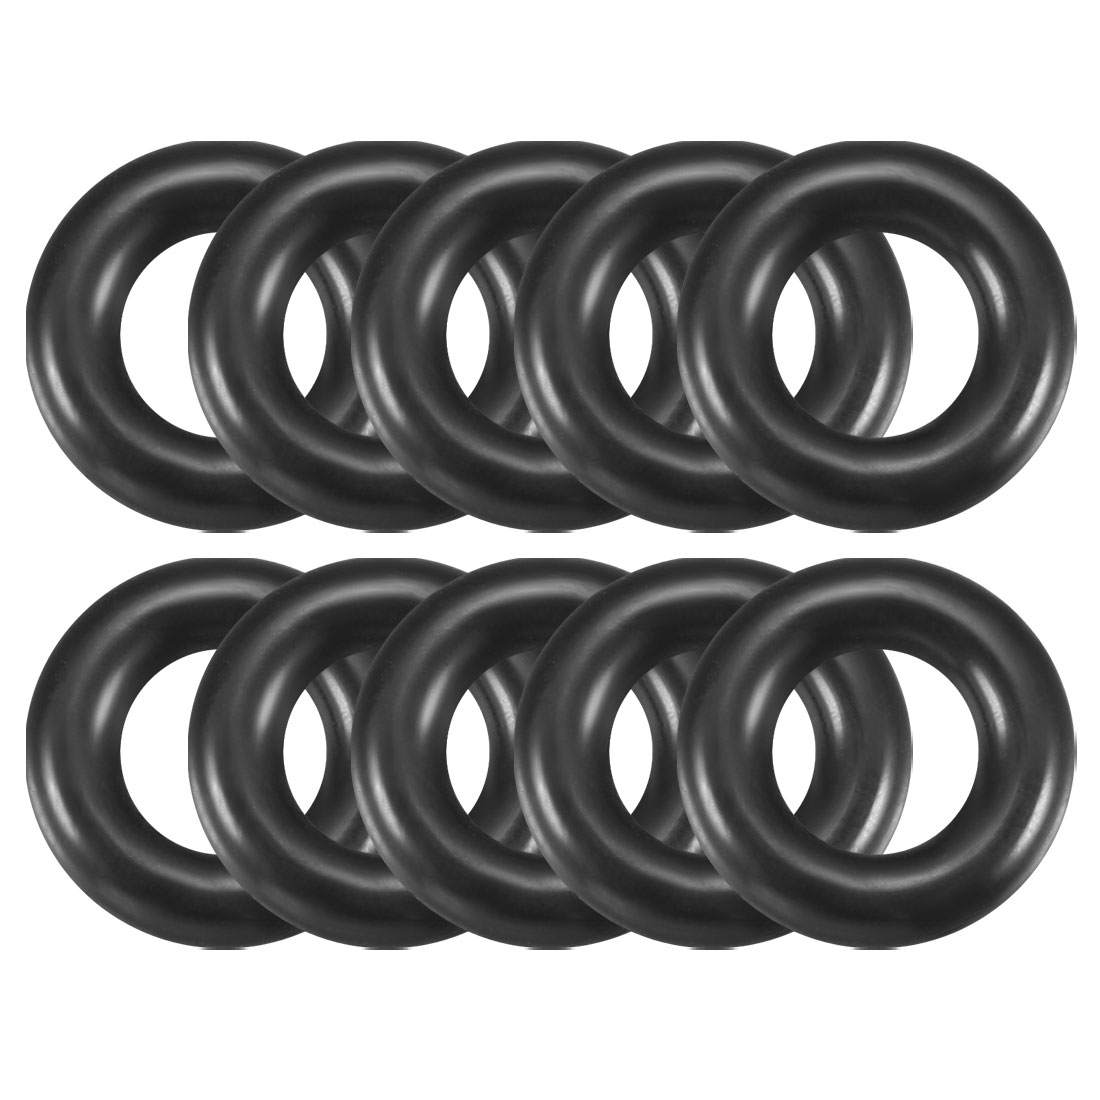 10 Pcs 14mm x 3.5mm x 7mm Mechanical Rubber O Ring Oil Seal Gaskets